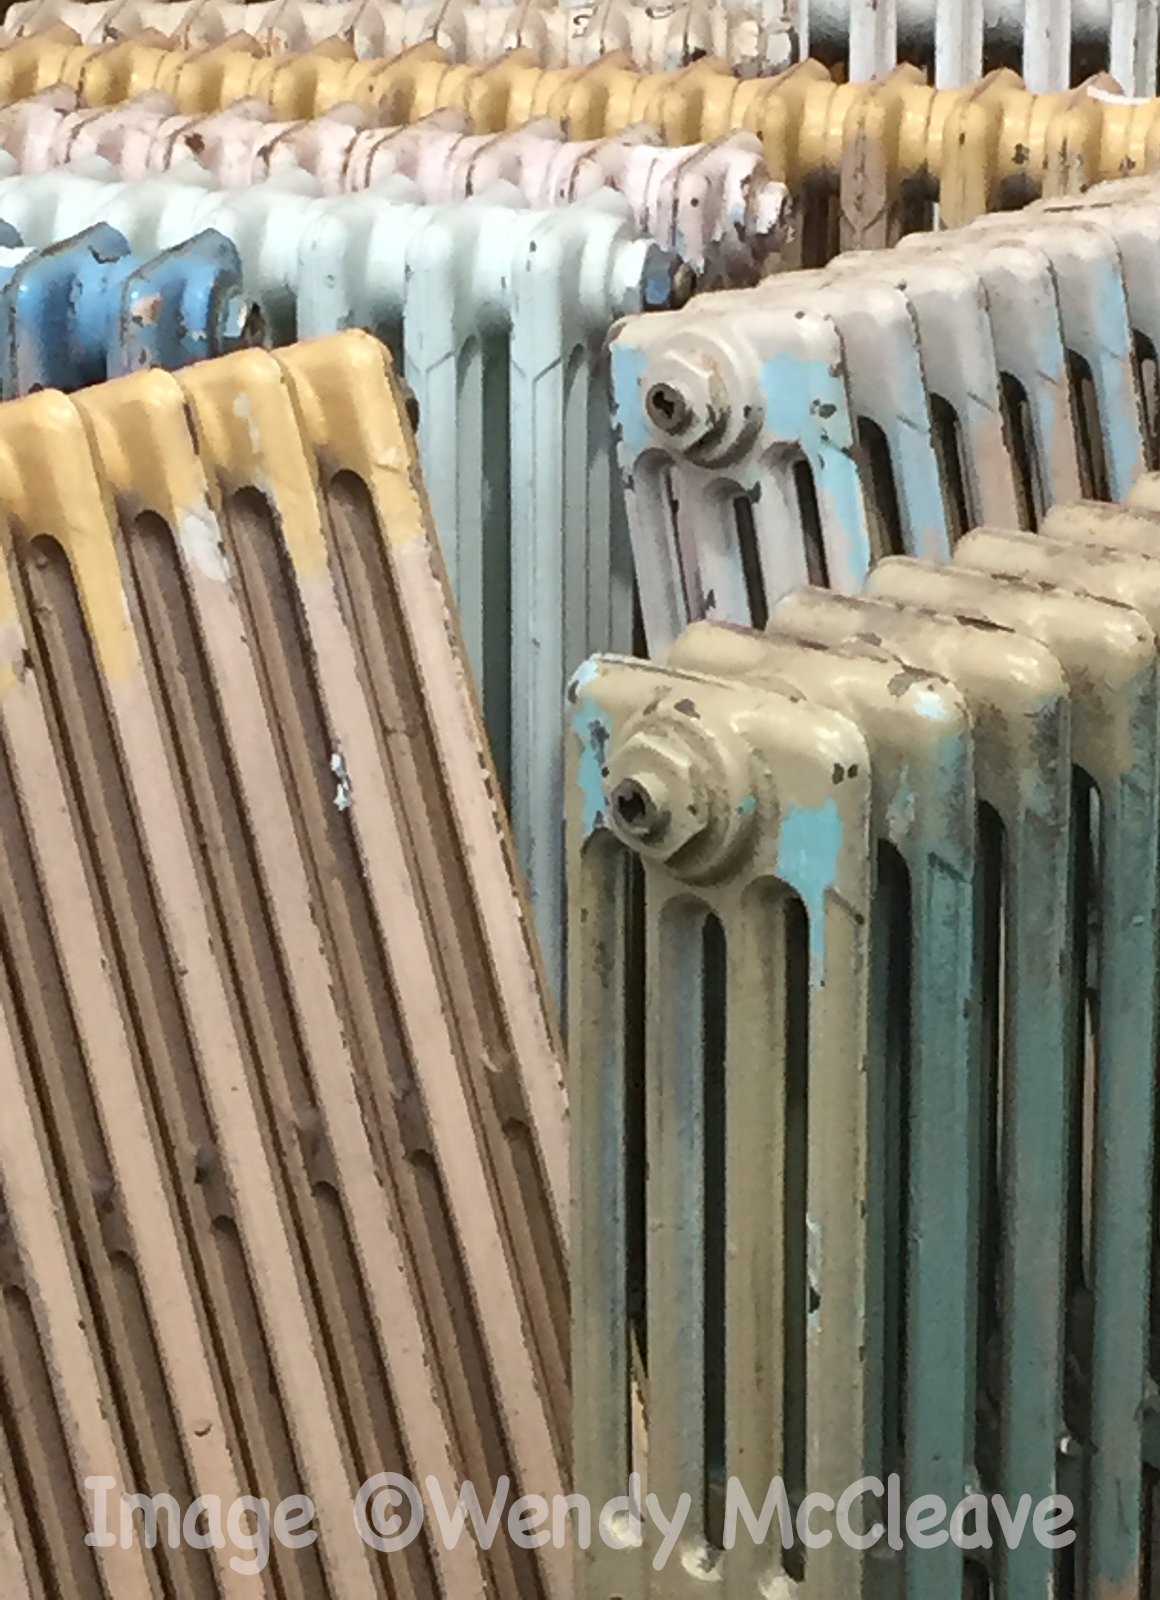 Old painted radiators at a reclamation centre